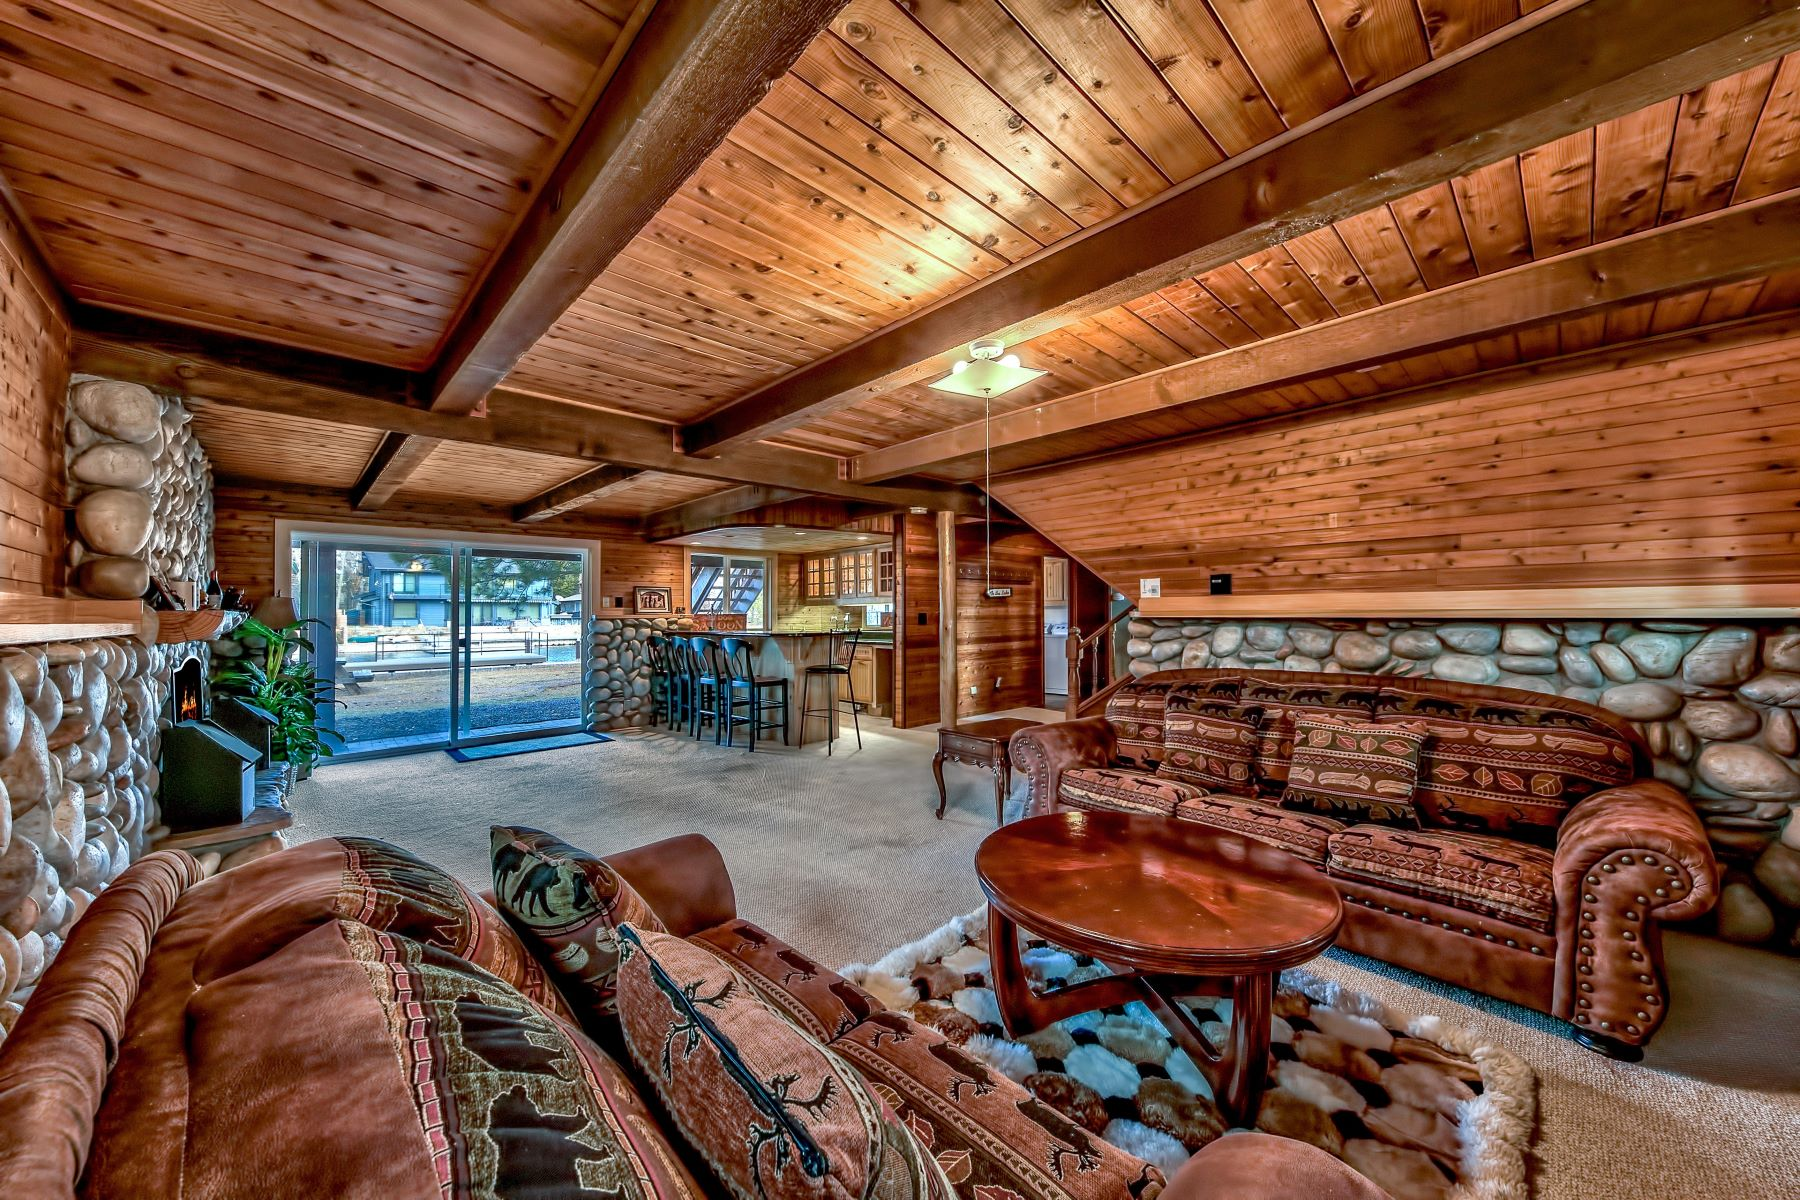 Additional photo for property listing at 2135 Monterey Drive, South Lake Tahoe, CA 96150 2135 Monterey Drive South Lake Tahoe, California 96150 United States